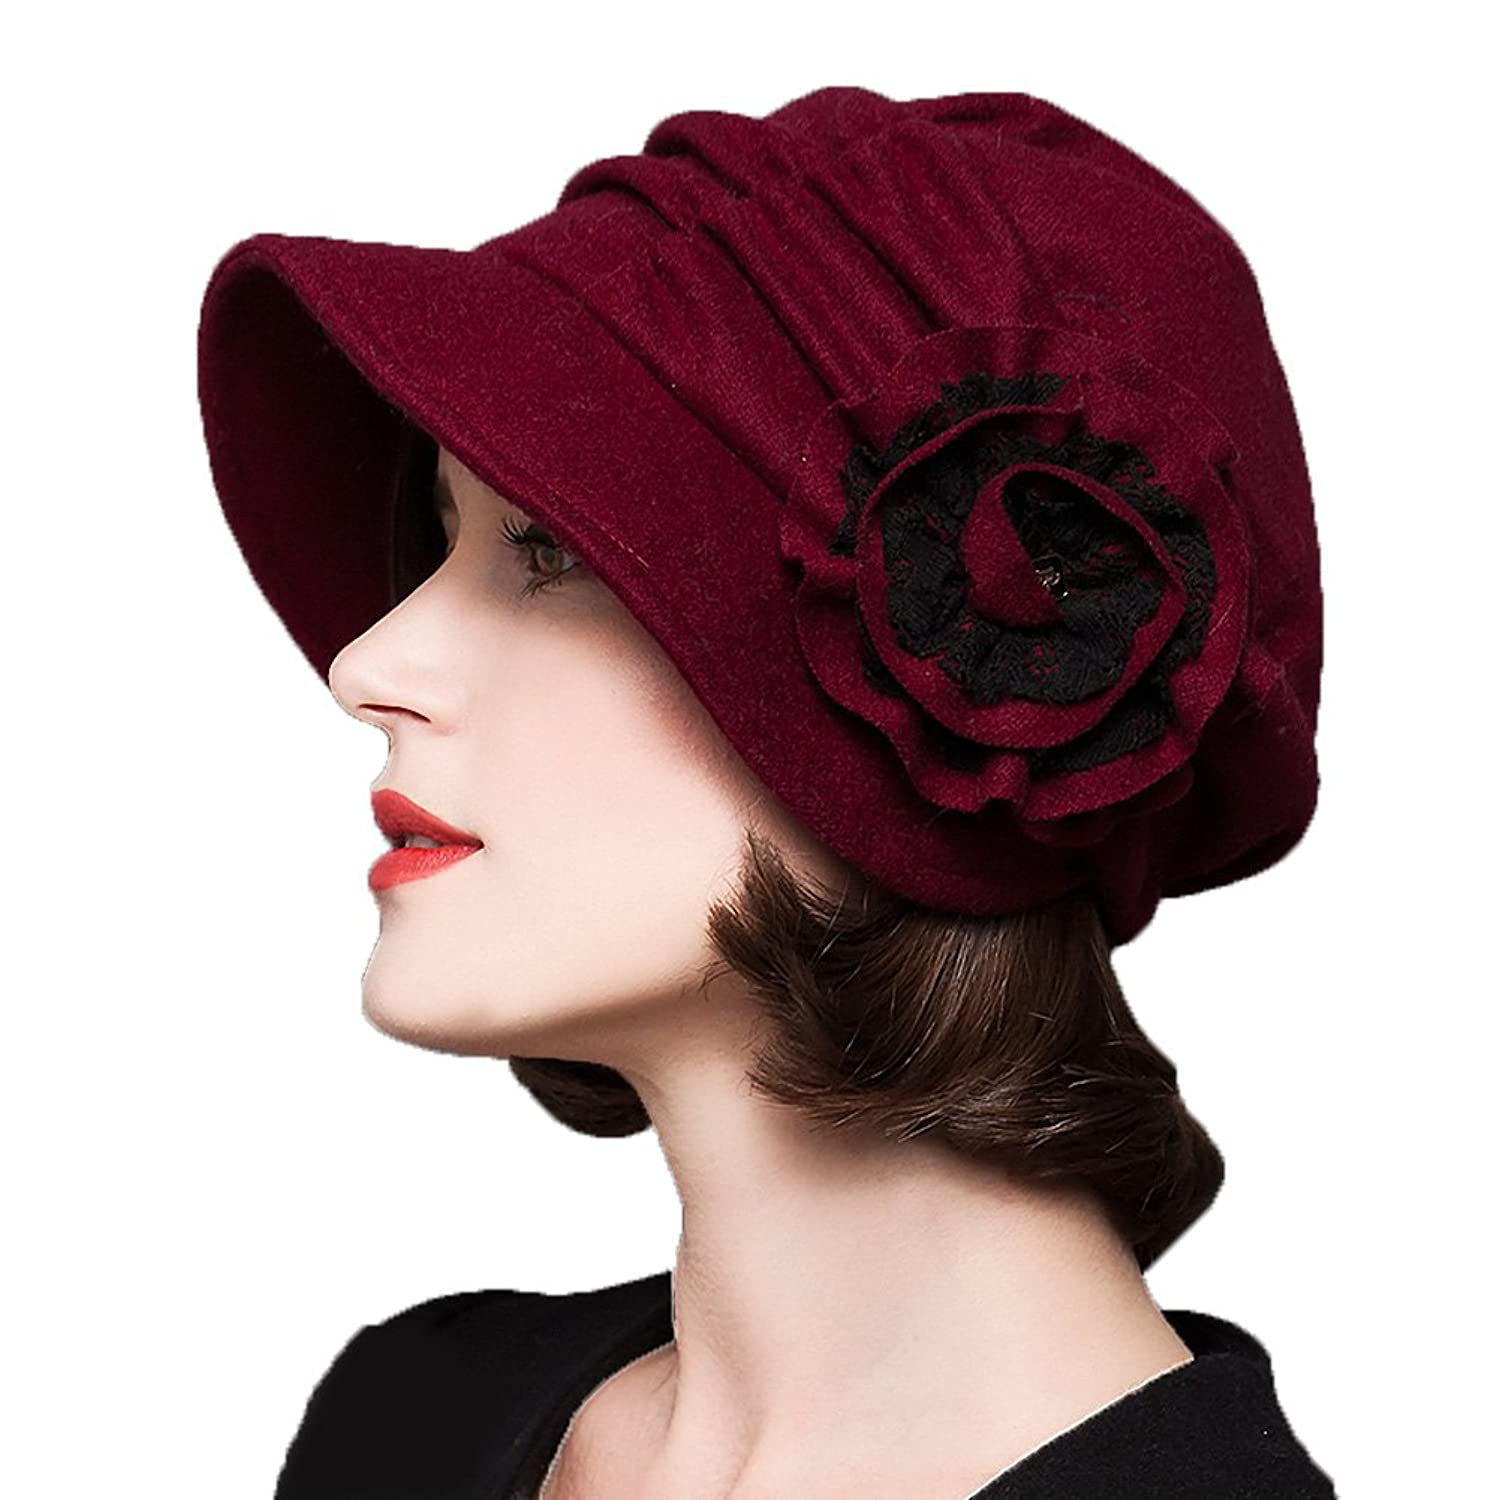 1900-1910s Clothing Decorative Flowers Wool Beret Maitose Trade Womens Decorative Flowers Wool Beret $28.40 AT vintagedancer.com